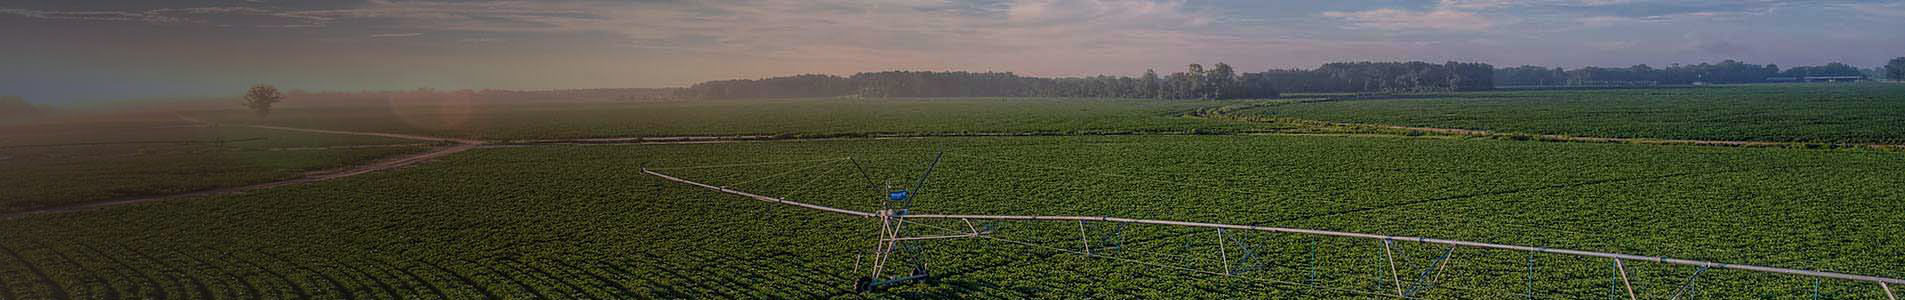 valley irrigation - research and education